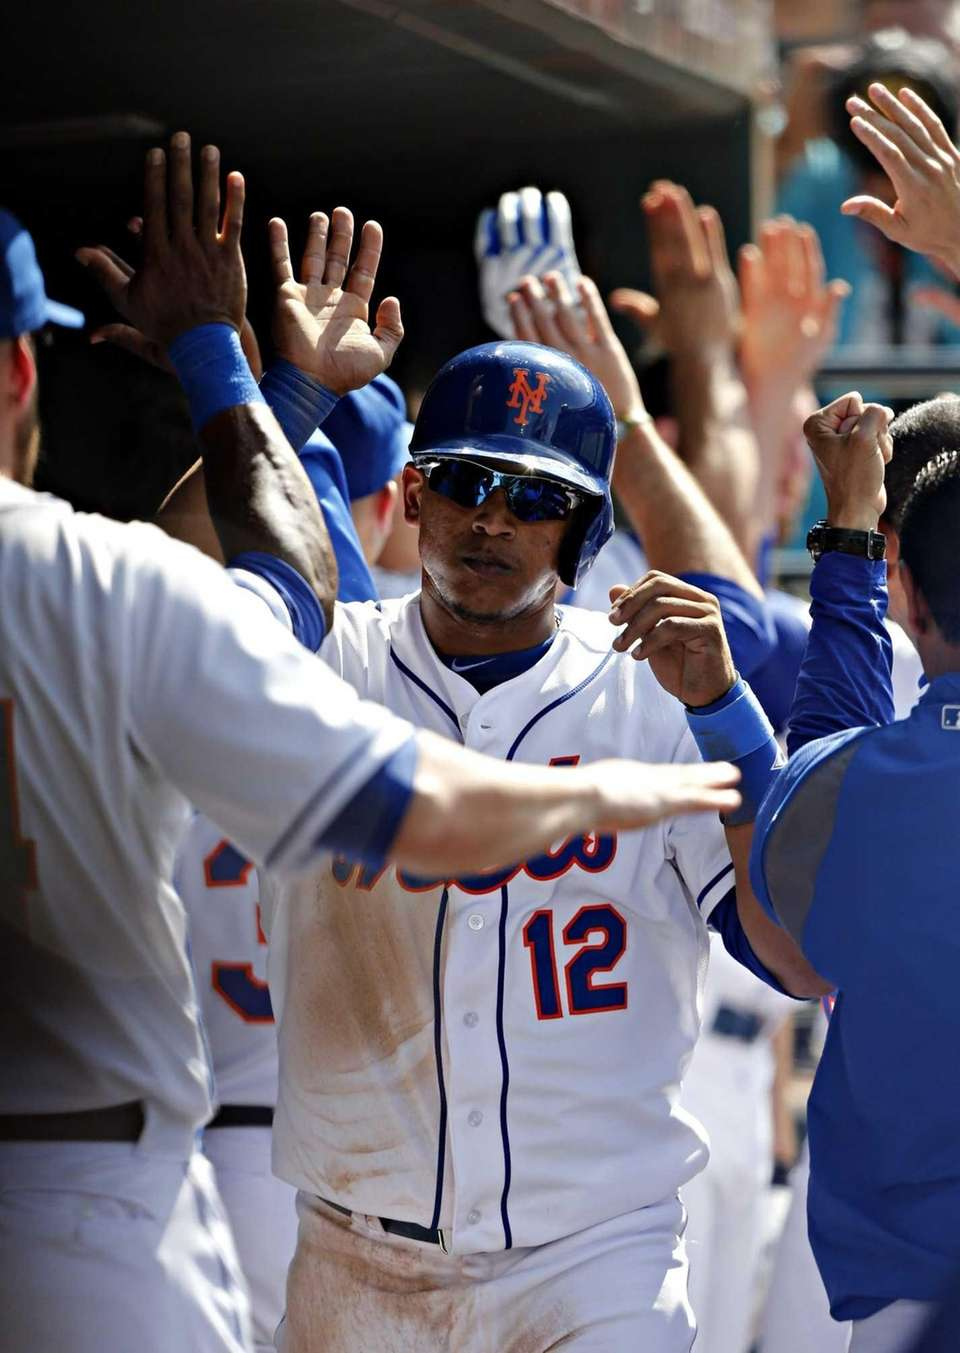 Mets centerfielder Juan Lagares is congratulated by teammates